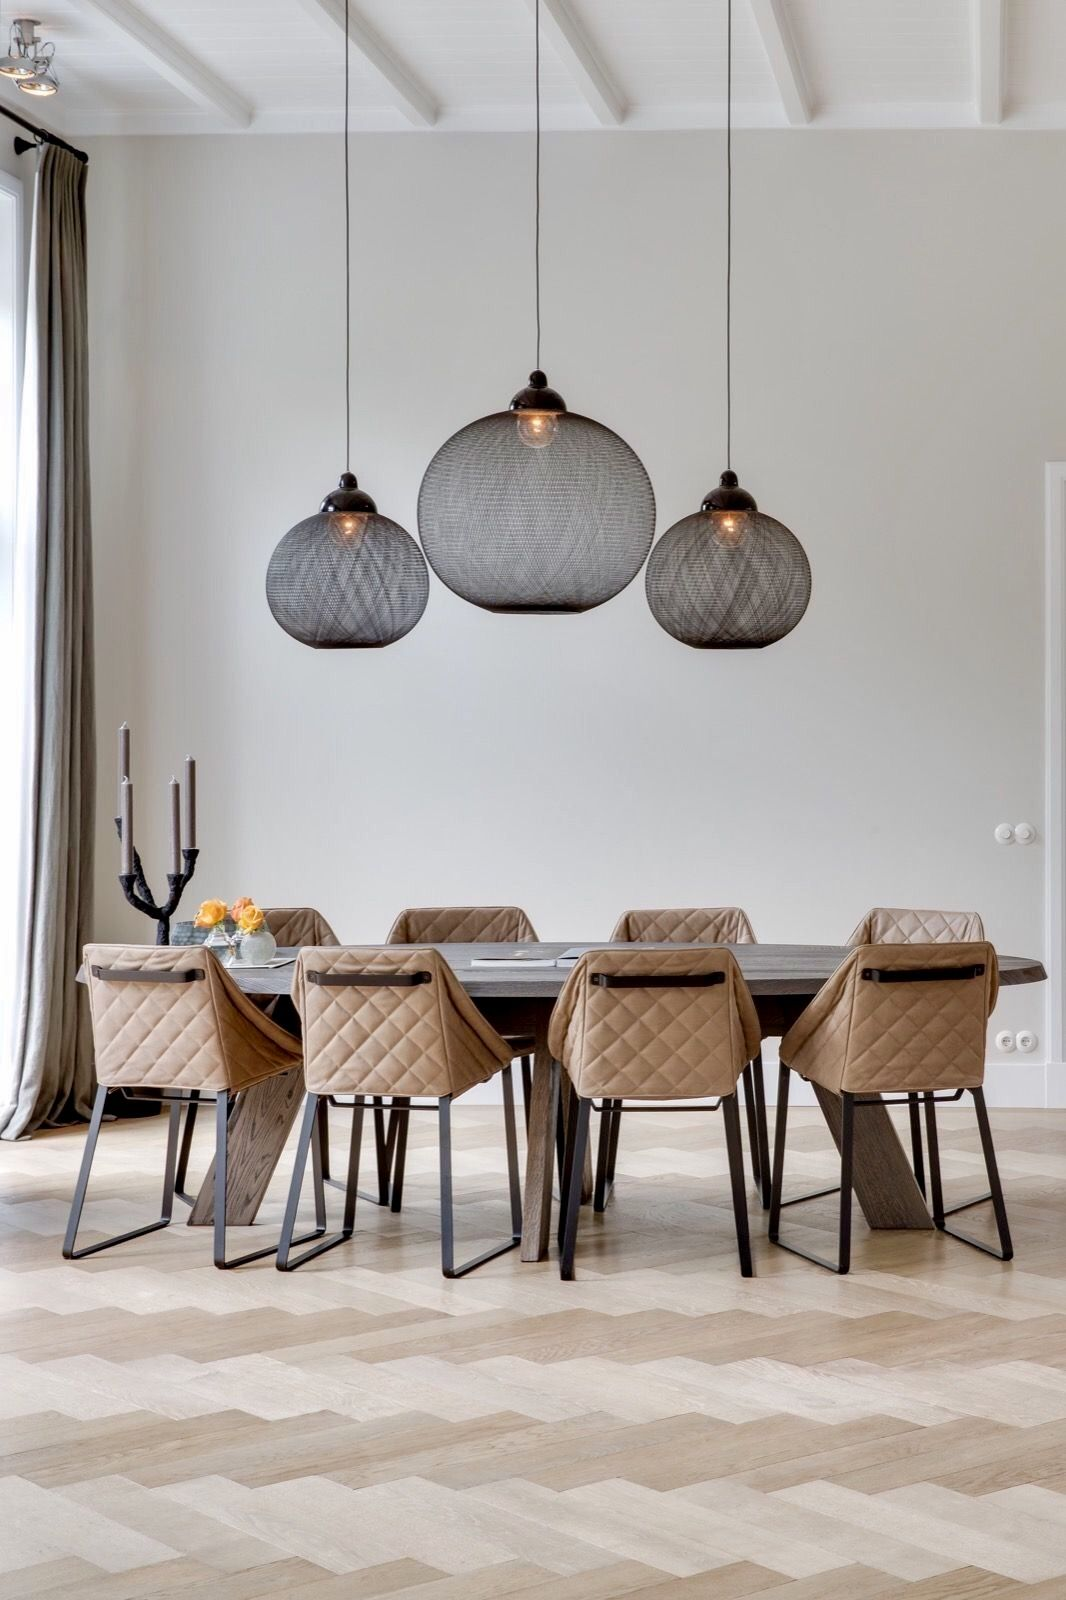 22 best ideas of pendant lighting for kitchen dining room and 22 best ideas of pendant lighting for kitchen dining room and bedroom mozeypictures Image collections